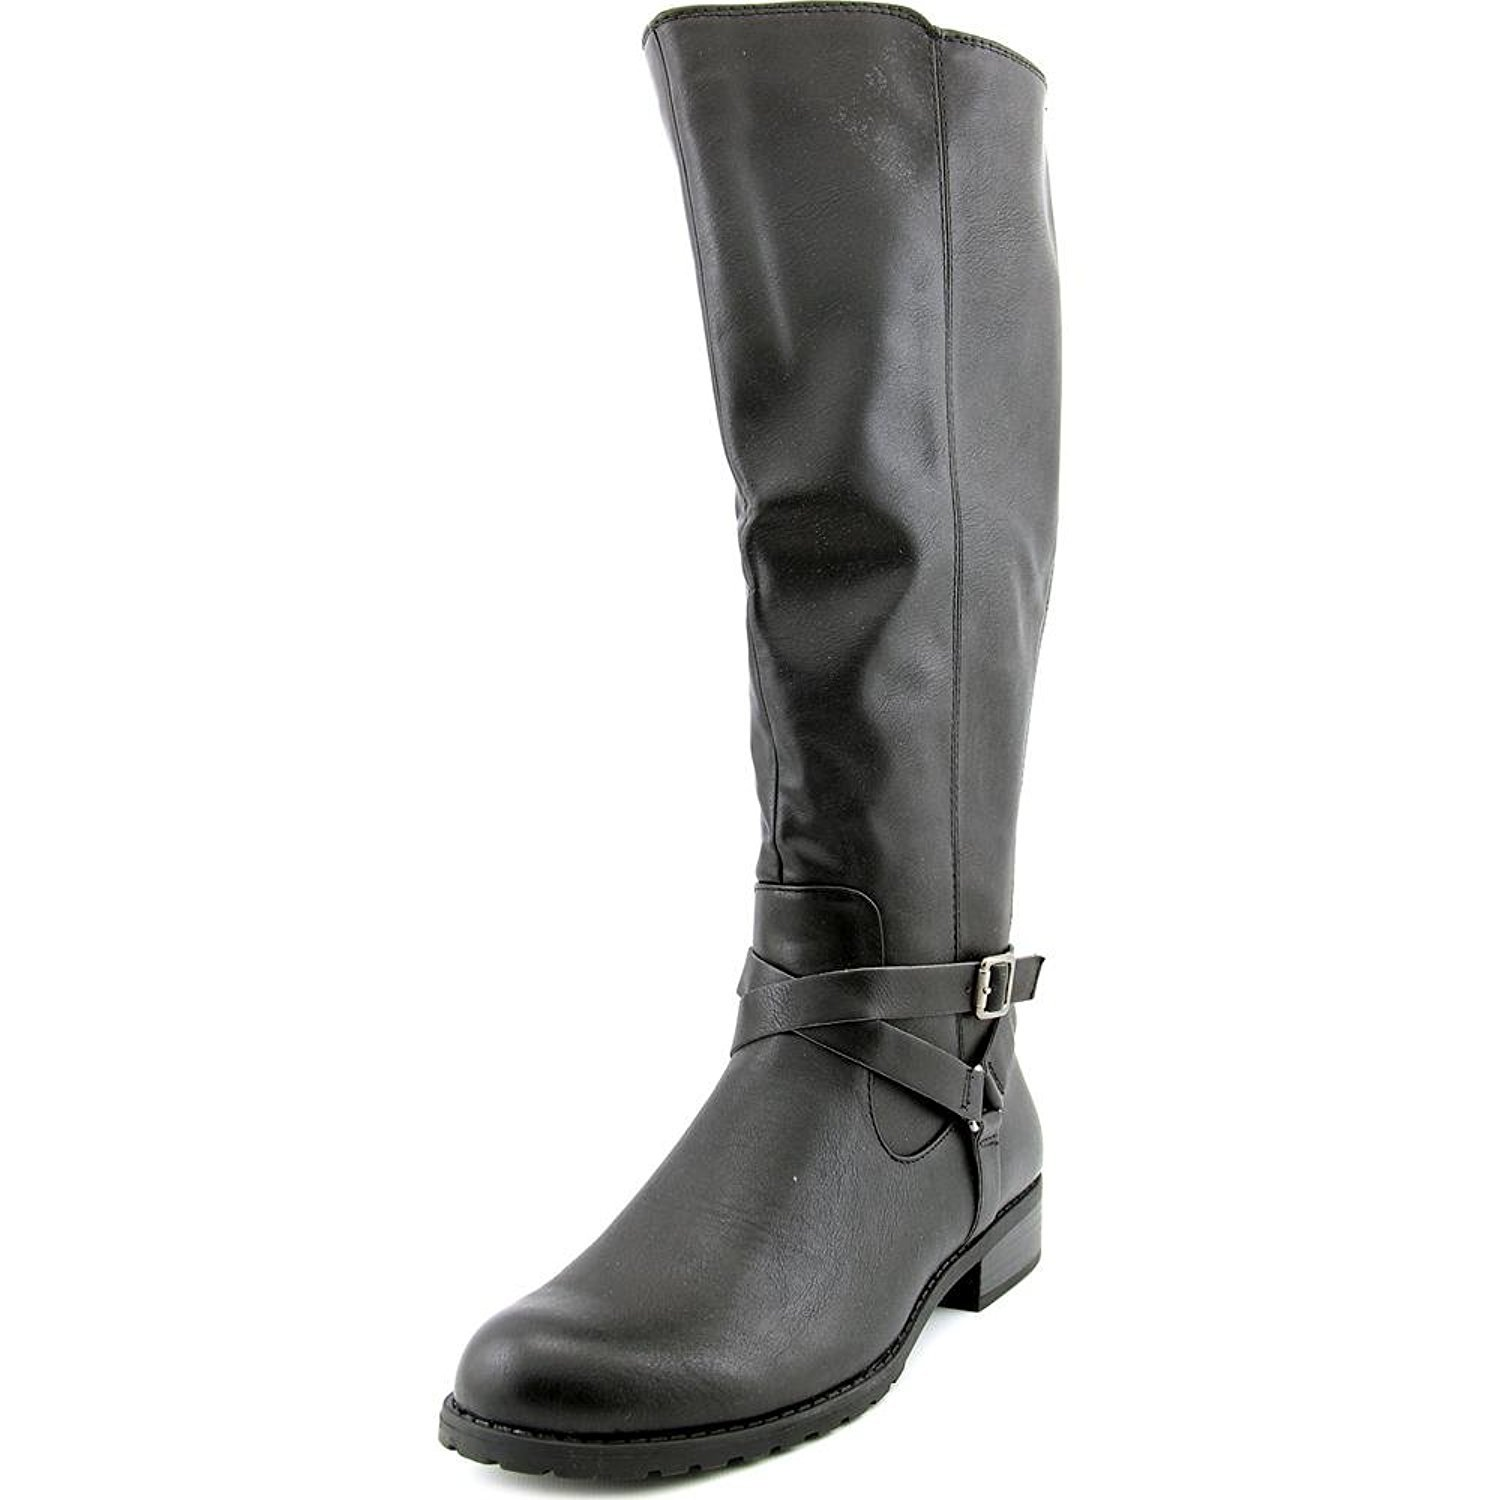 Style & Co.. Womens BRIGYTE Almond Toe Knee High Riding Boots, Black WC, Size 5.0